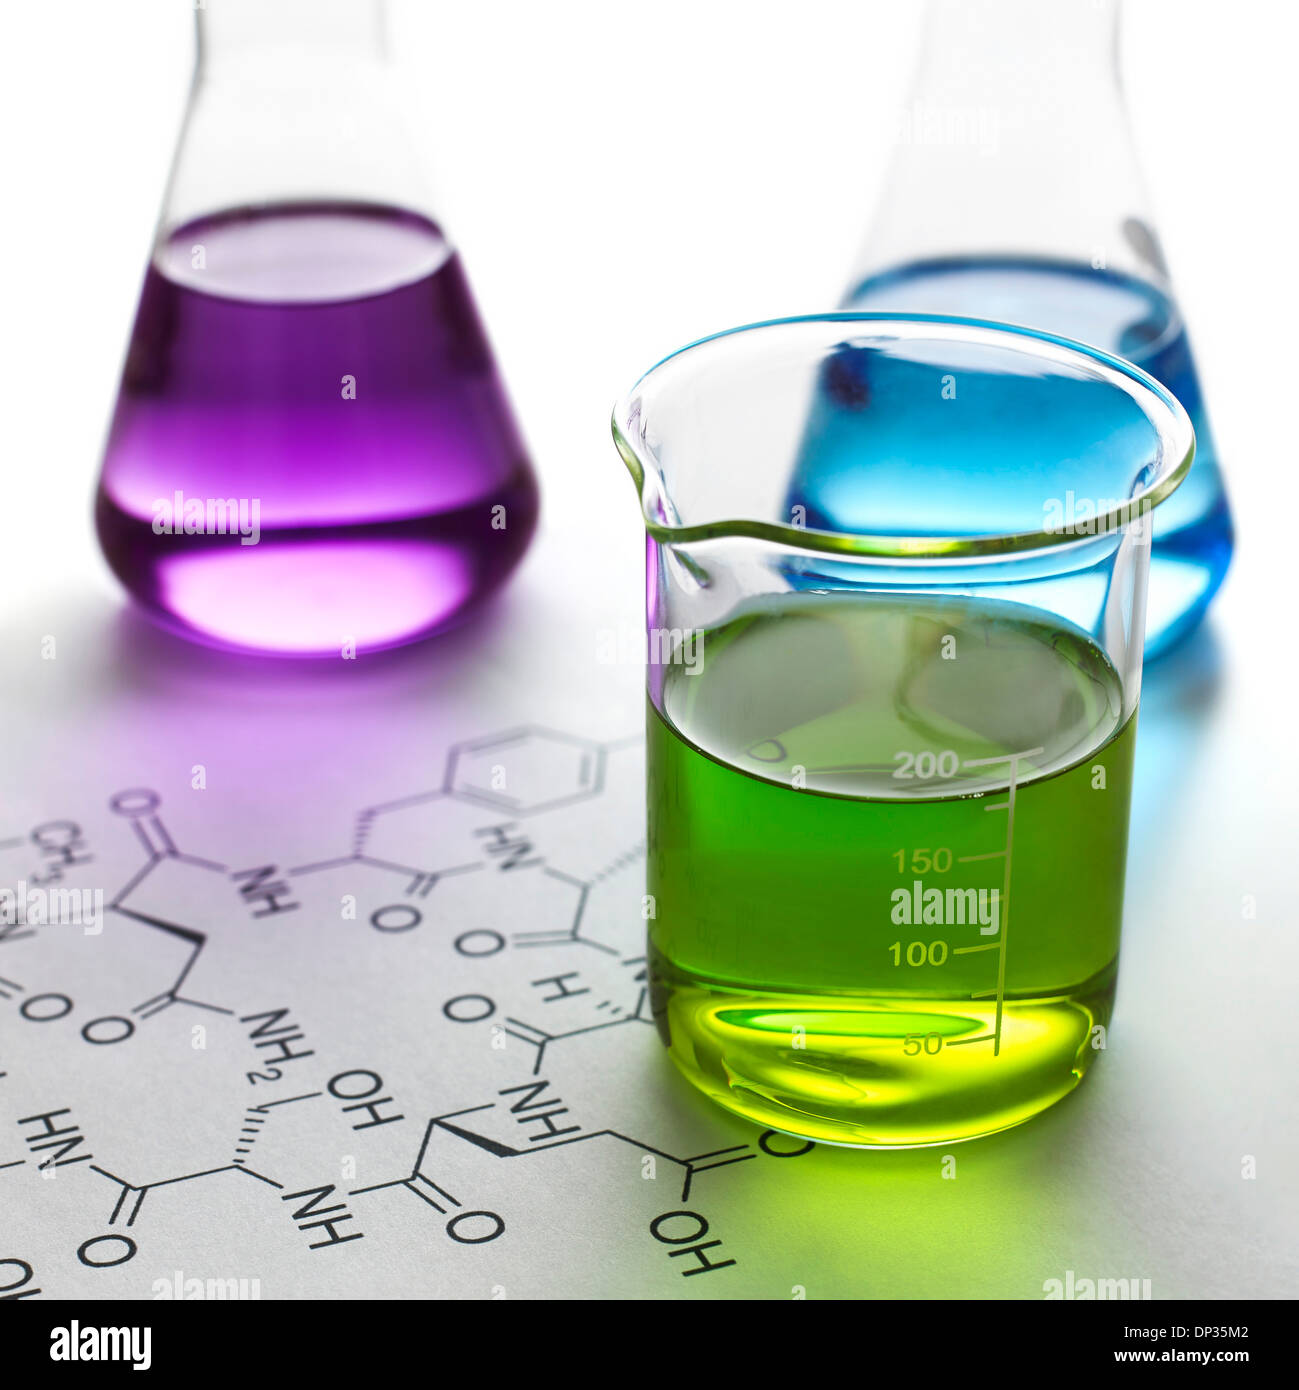 Chemical research, conceptual image - Stock Image